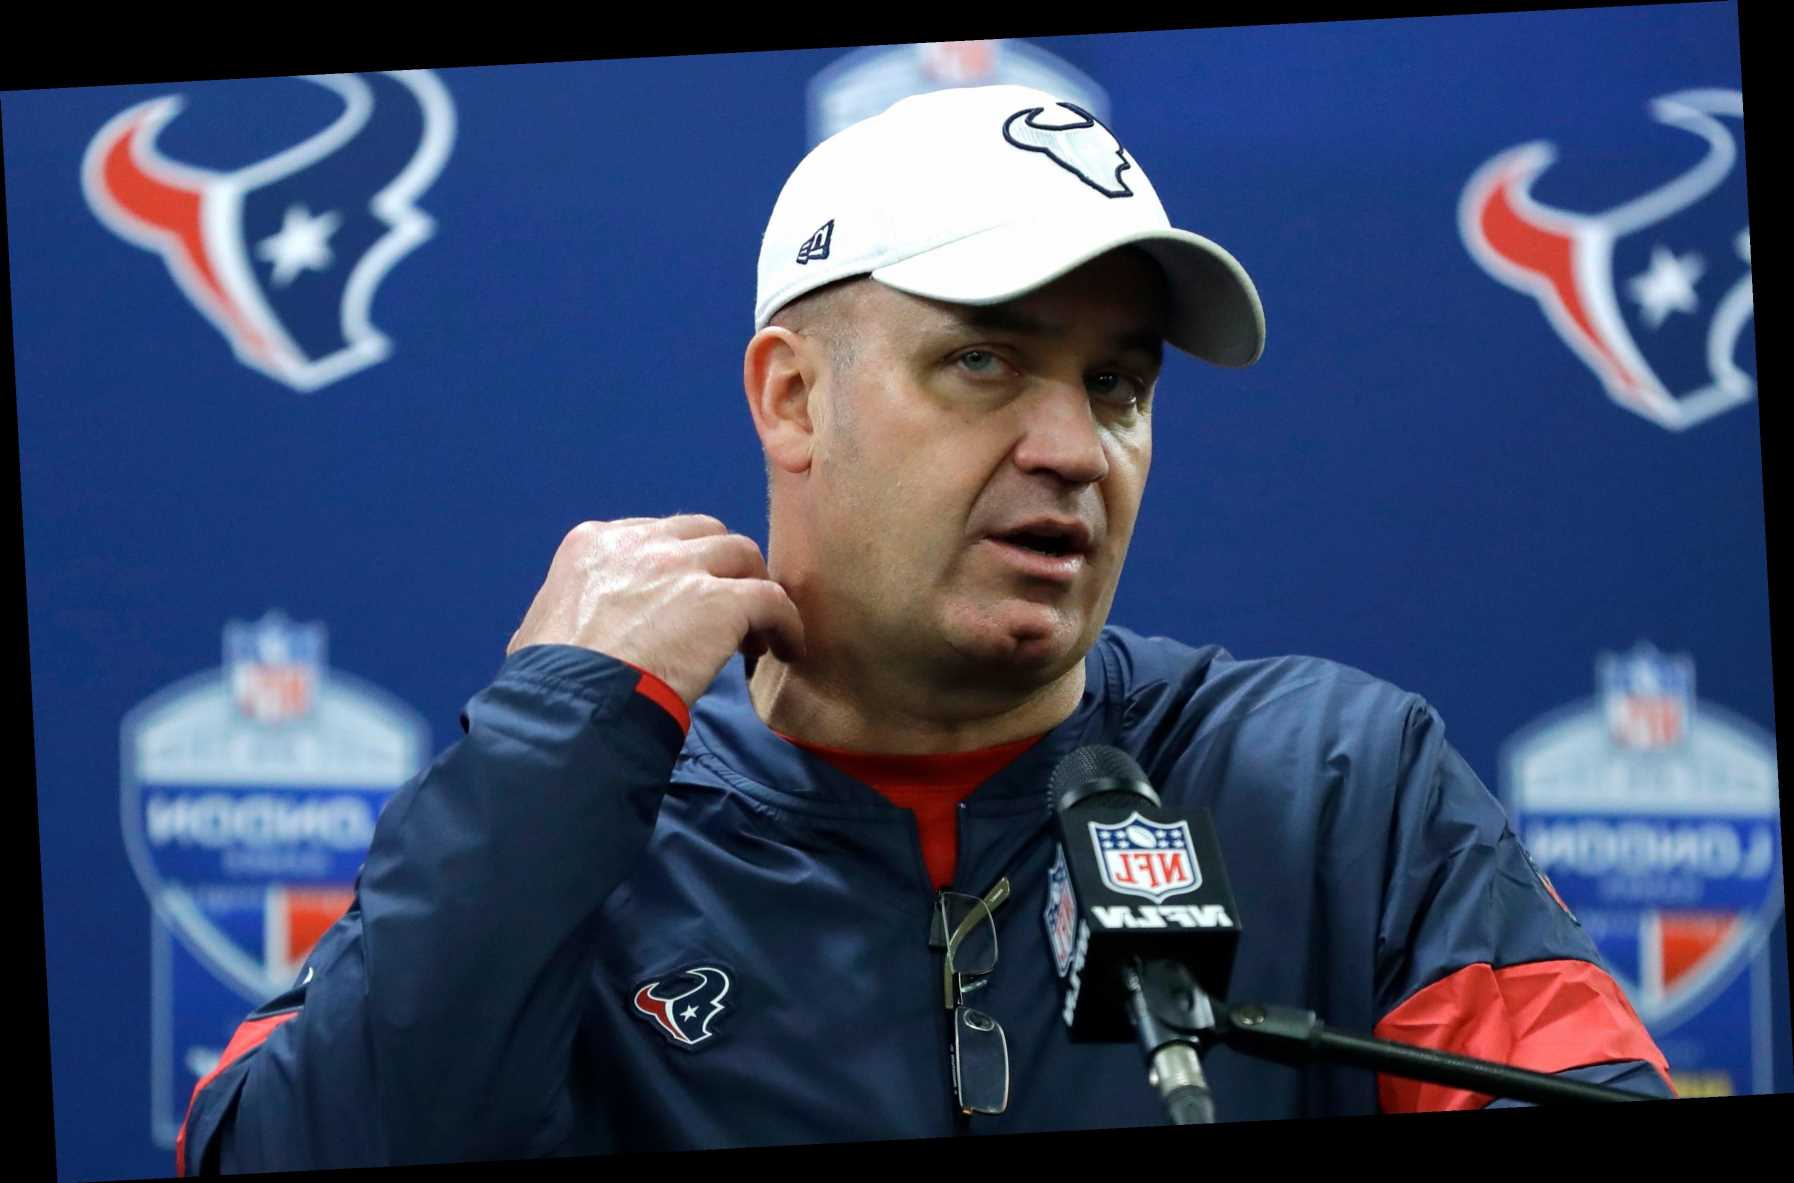 Texans fire Bill O'Brien after slow start, confusing trade